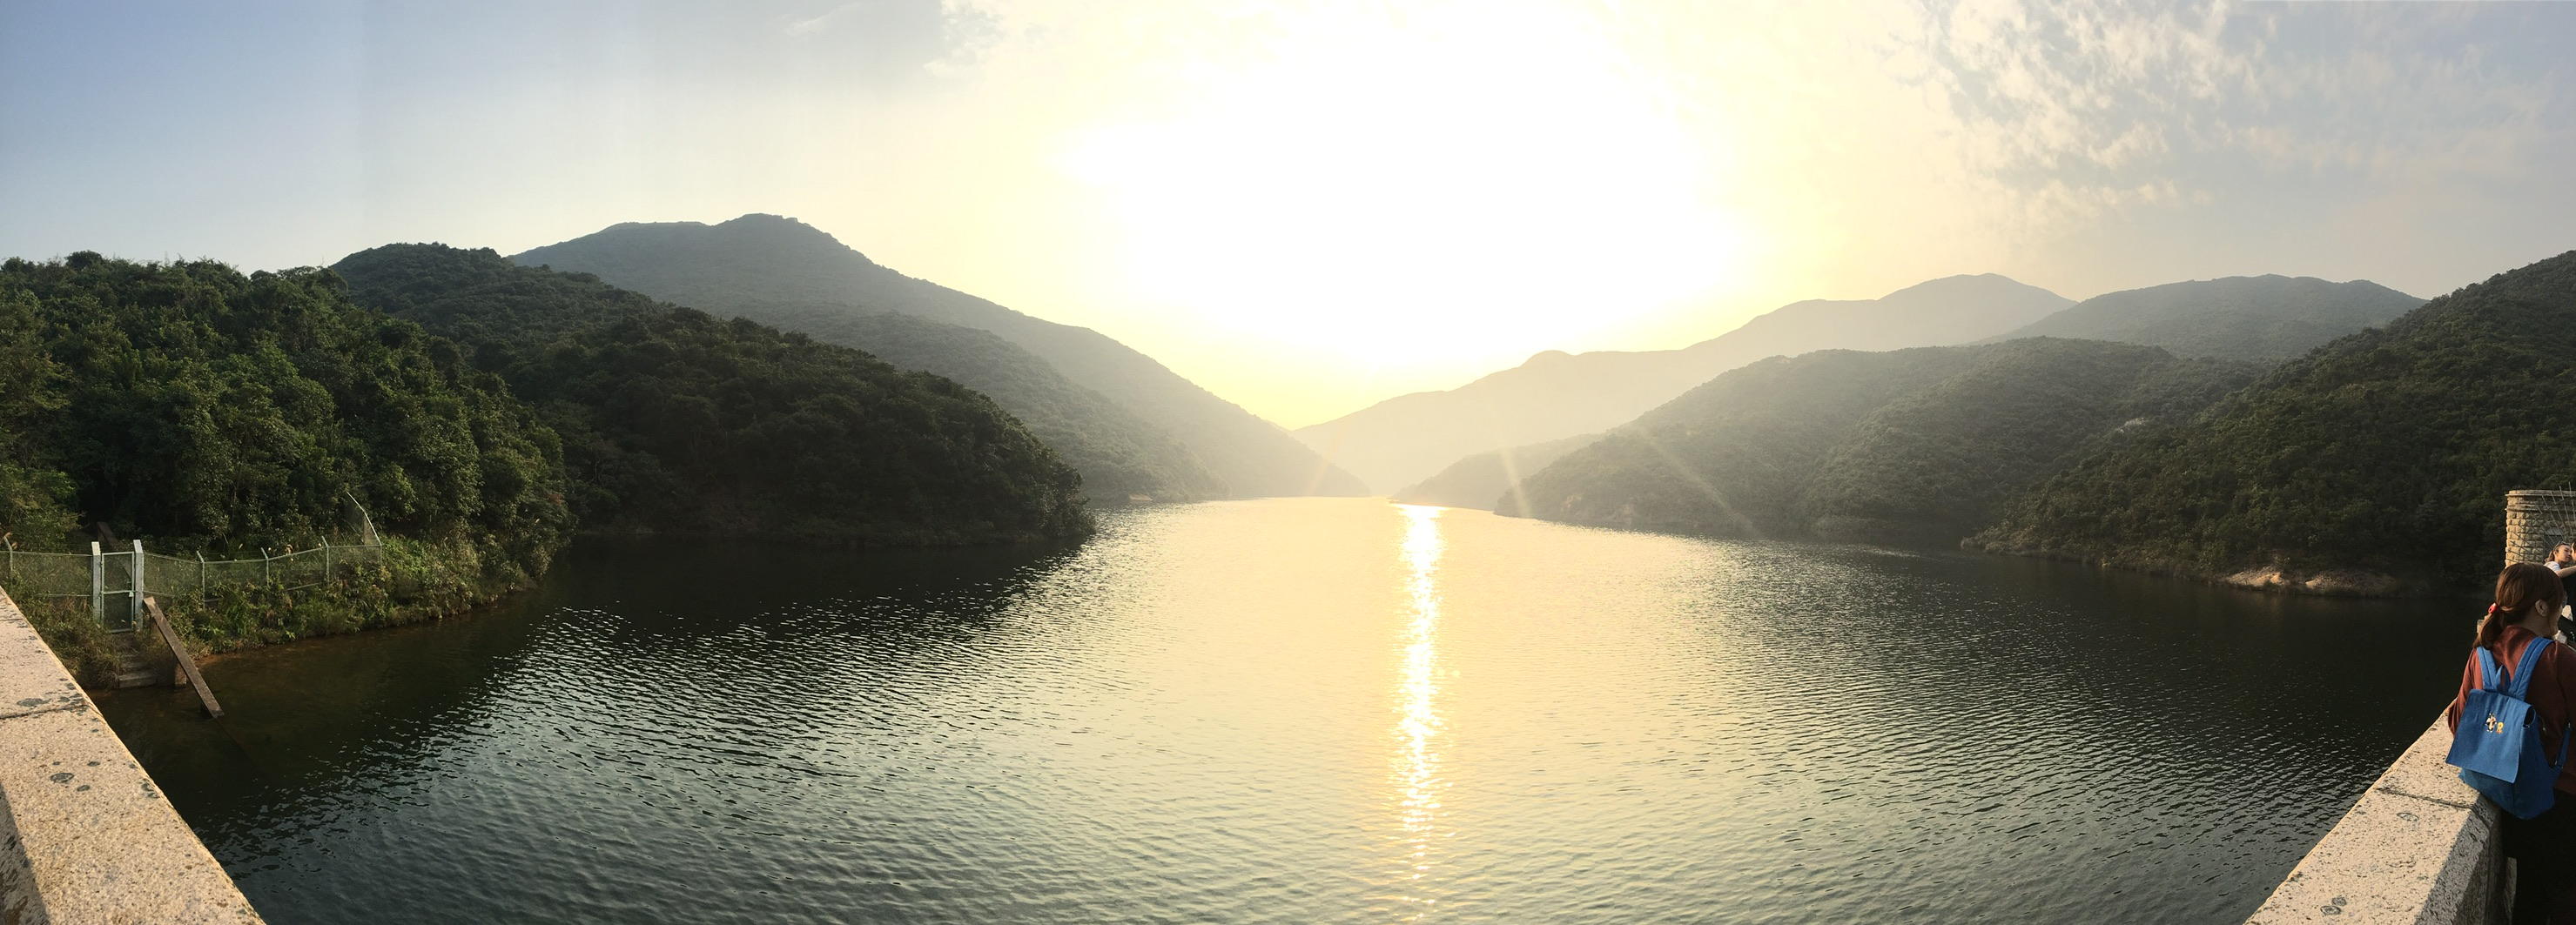 View of the Tai Tam Reservoir